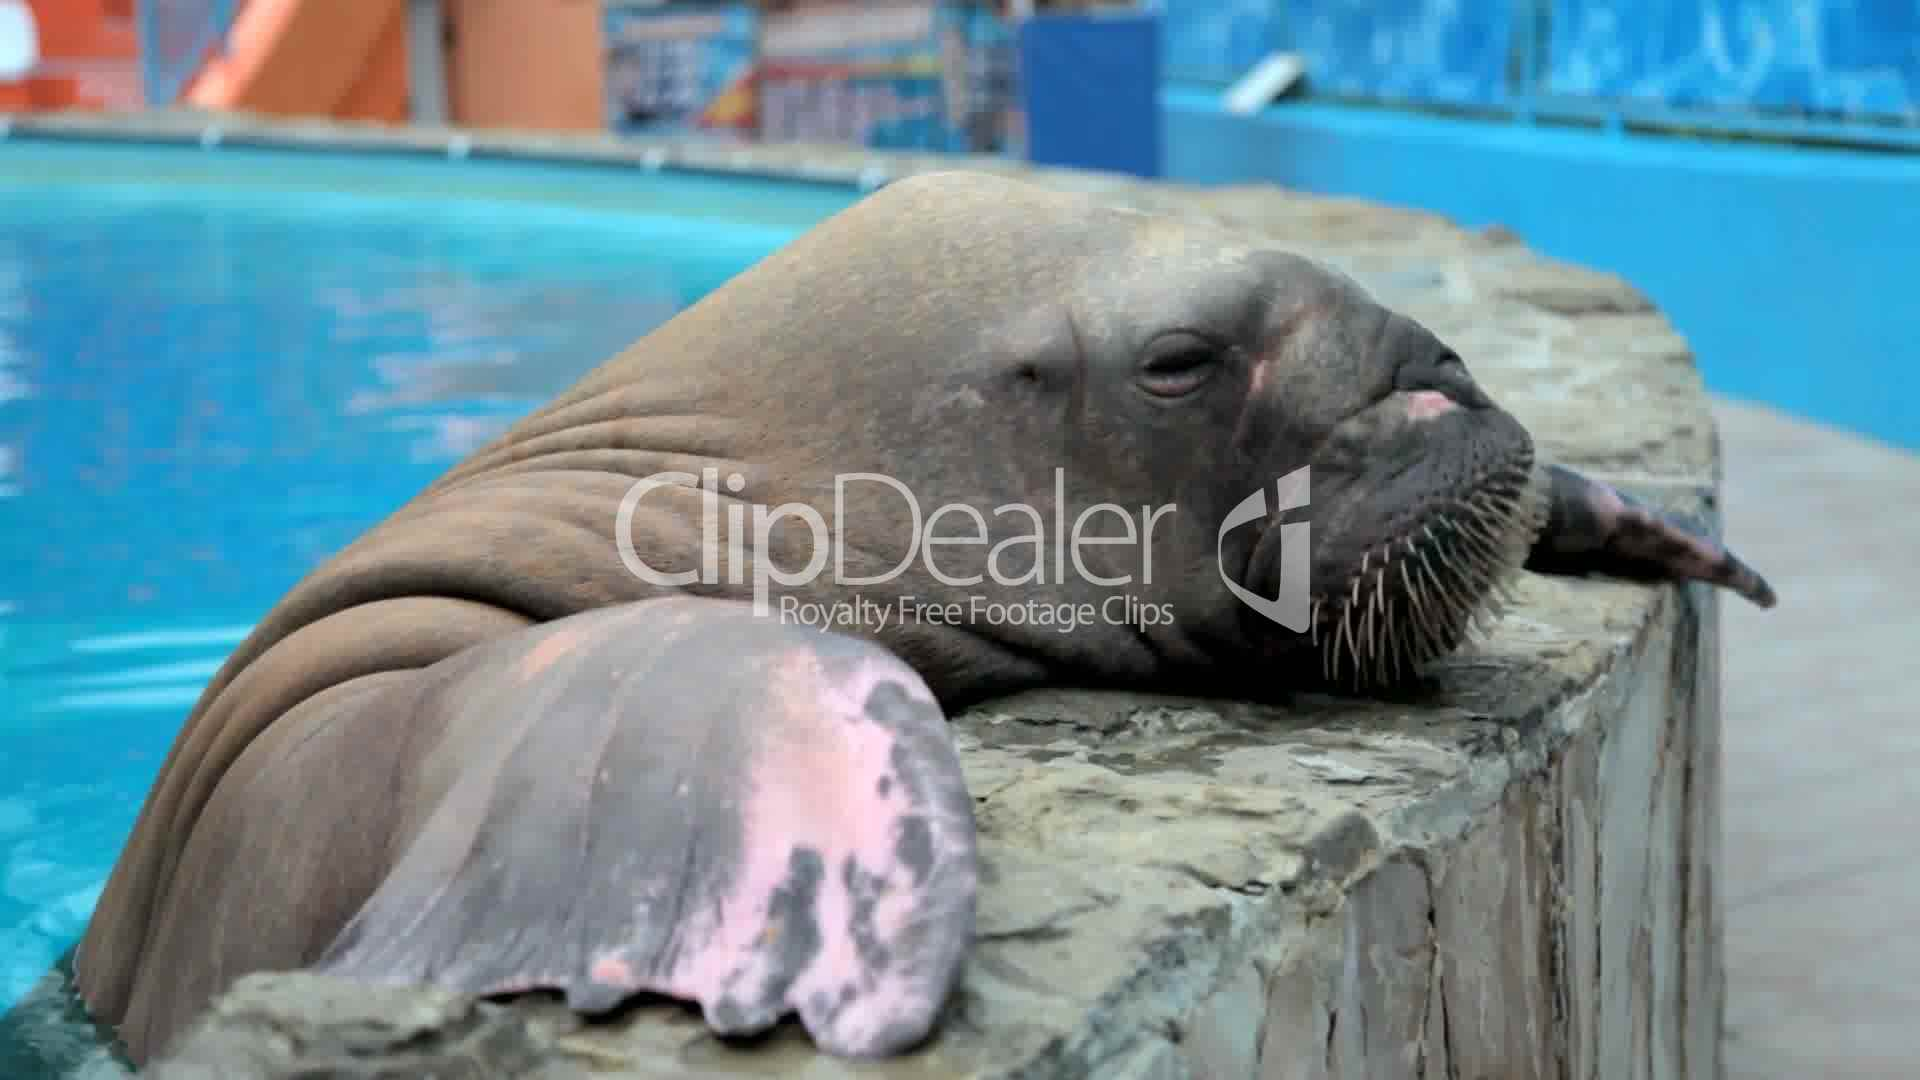 walrus eats fish: Royalty-free video and stock footage